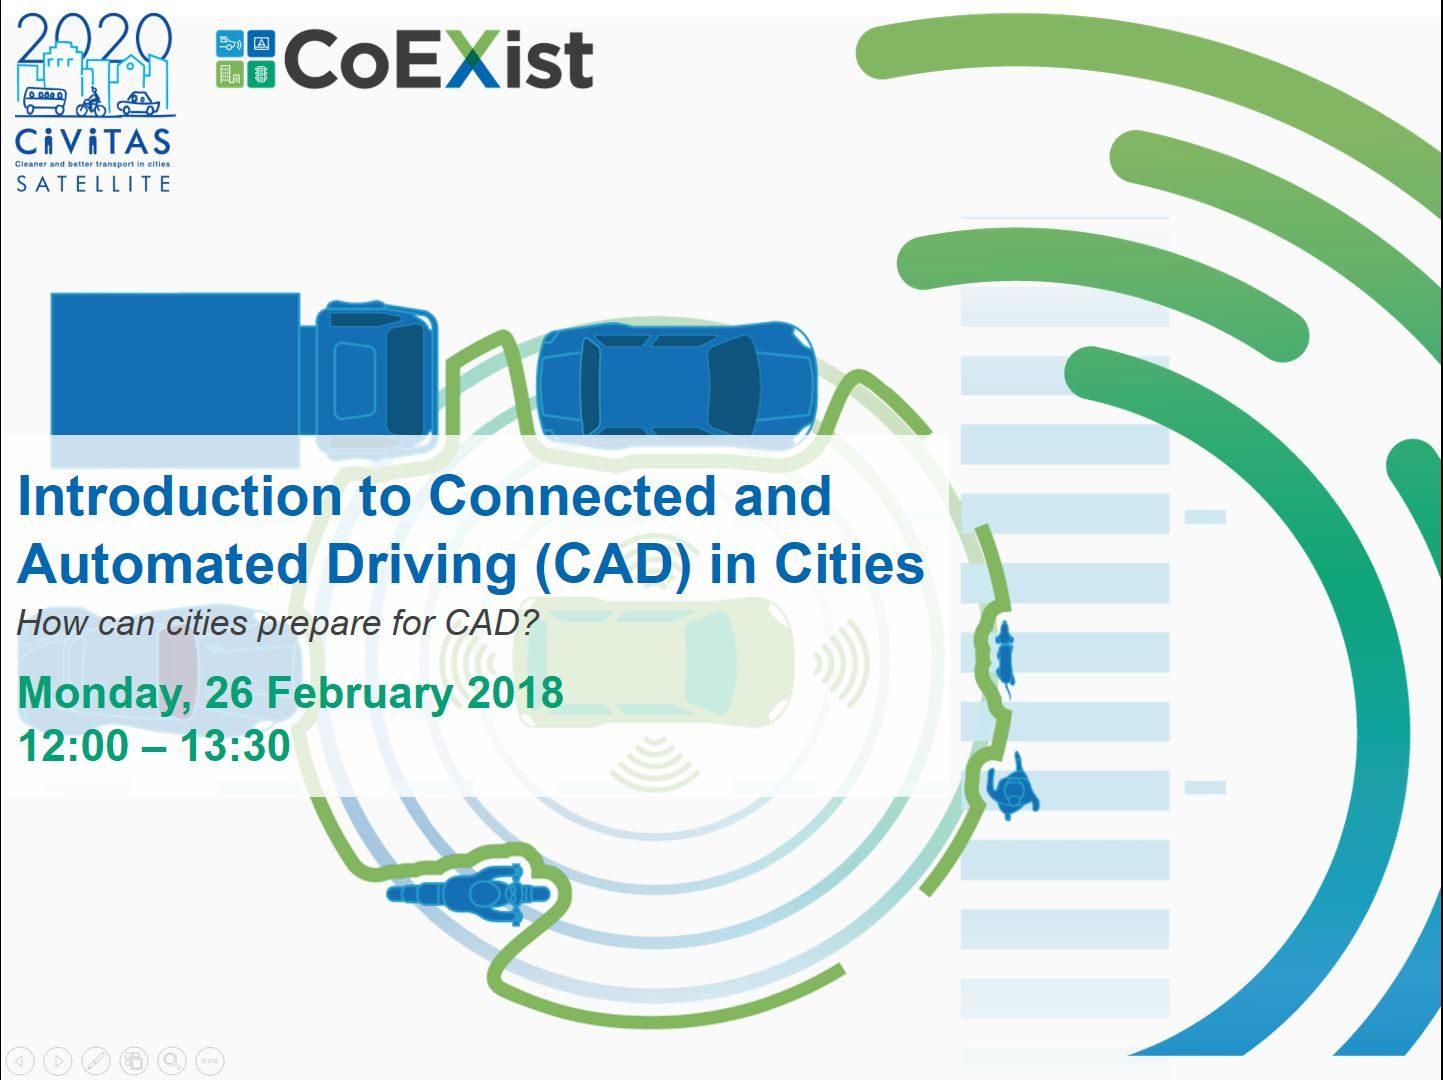 Connected and Automated Driving (CAD) in Cities: How can cities prepare for CAD?